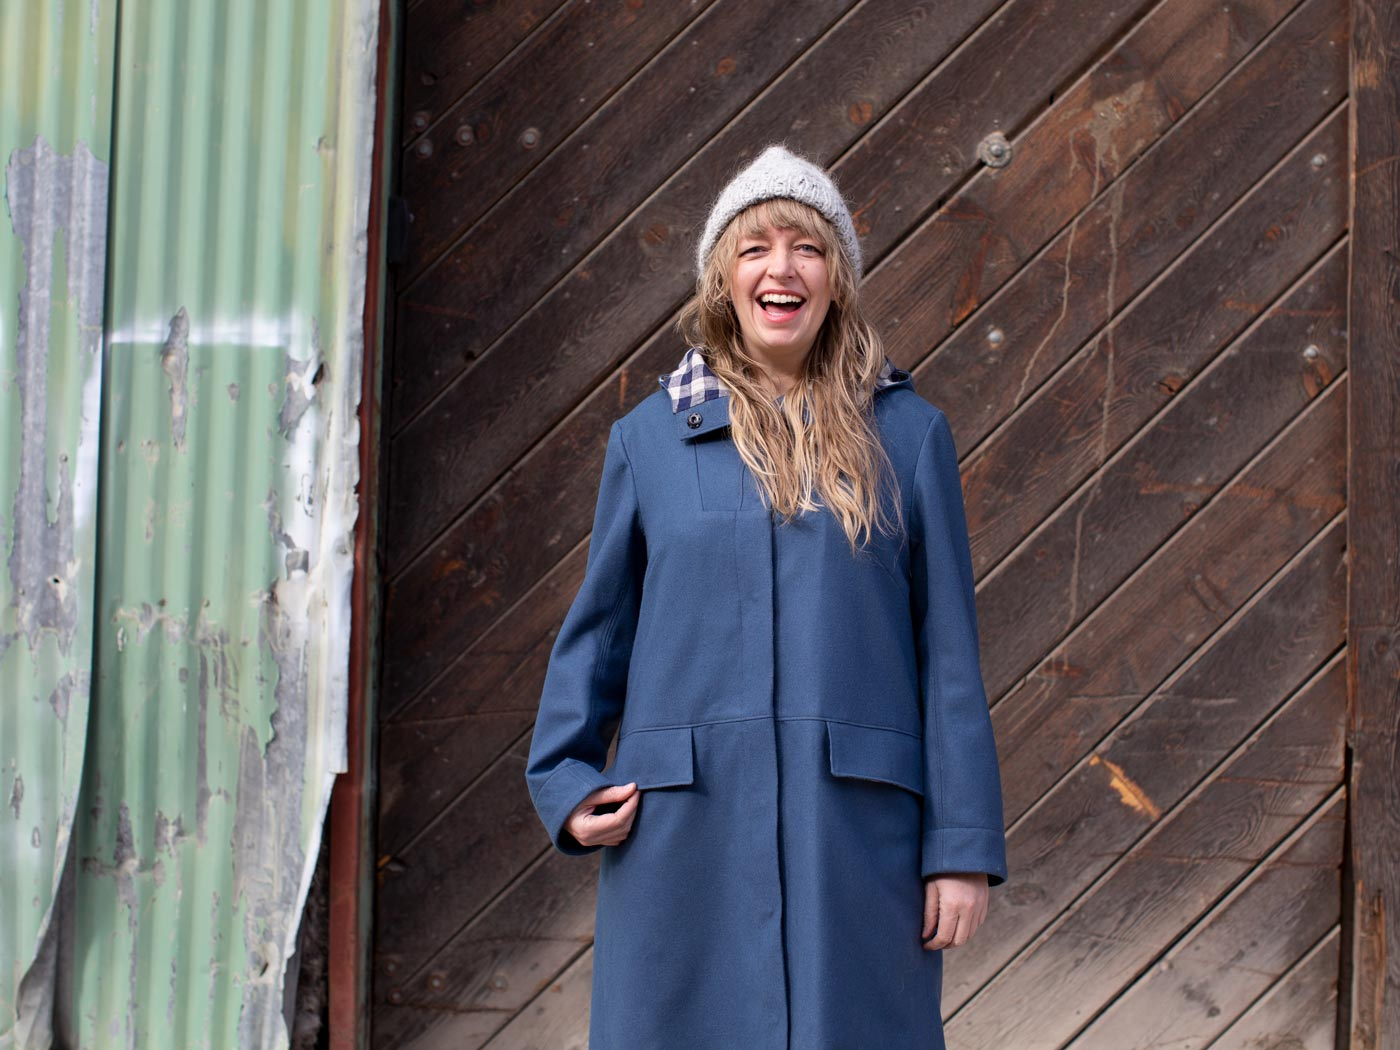 A person with long blonde hair stands smiling in front of a large barn-wood door. They wear a blue wool parka, a woolly beanie, and with one hand tugs at the pocket of their coat.